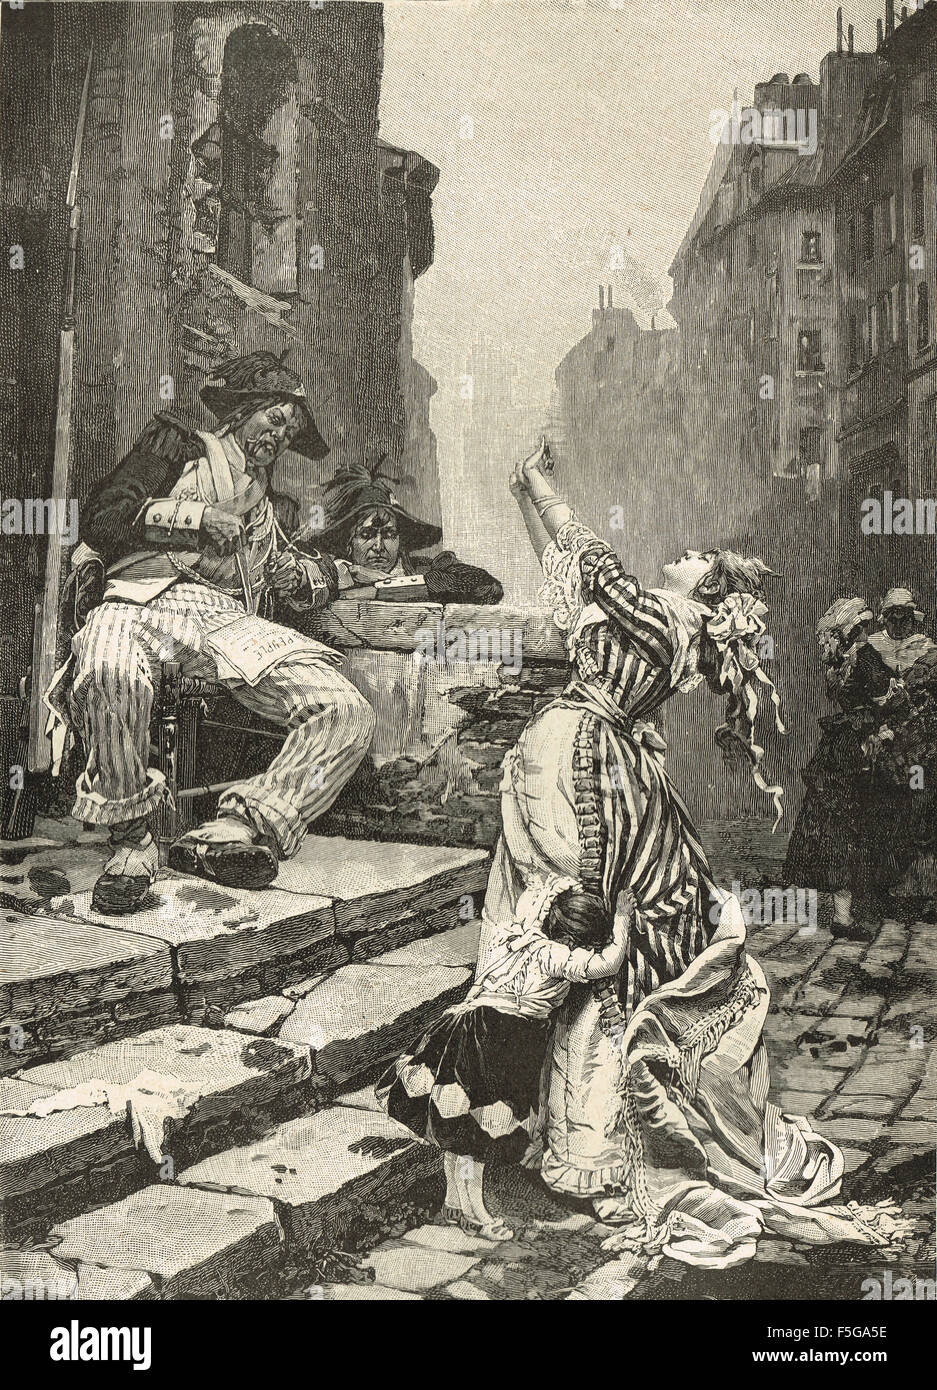 A Vain Appeal The Reign of Terror Paris, France 1793-4 - Stock Image